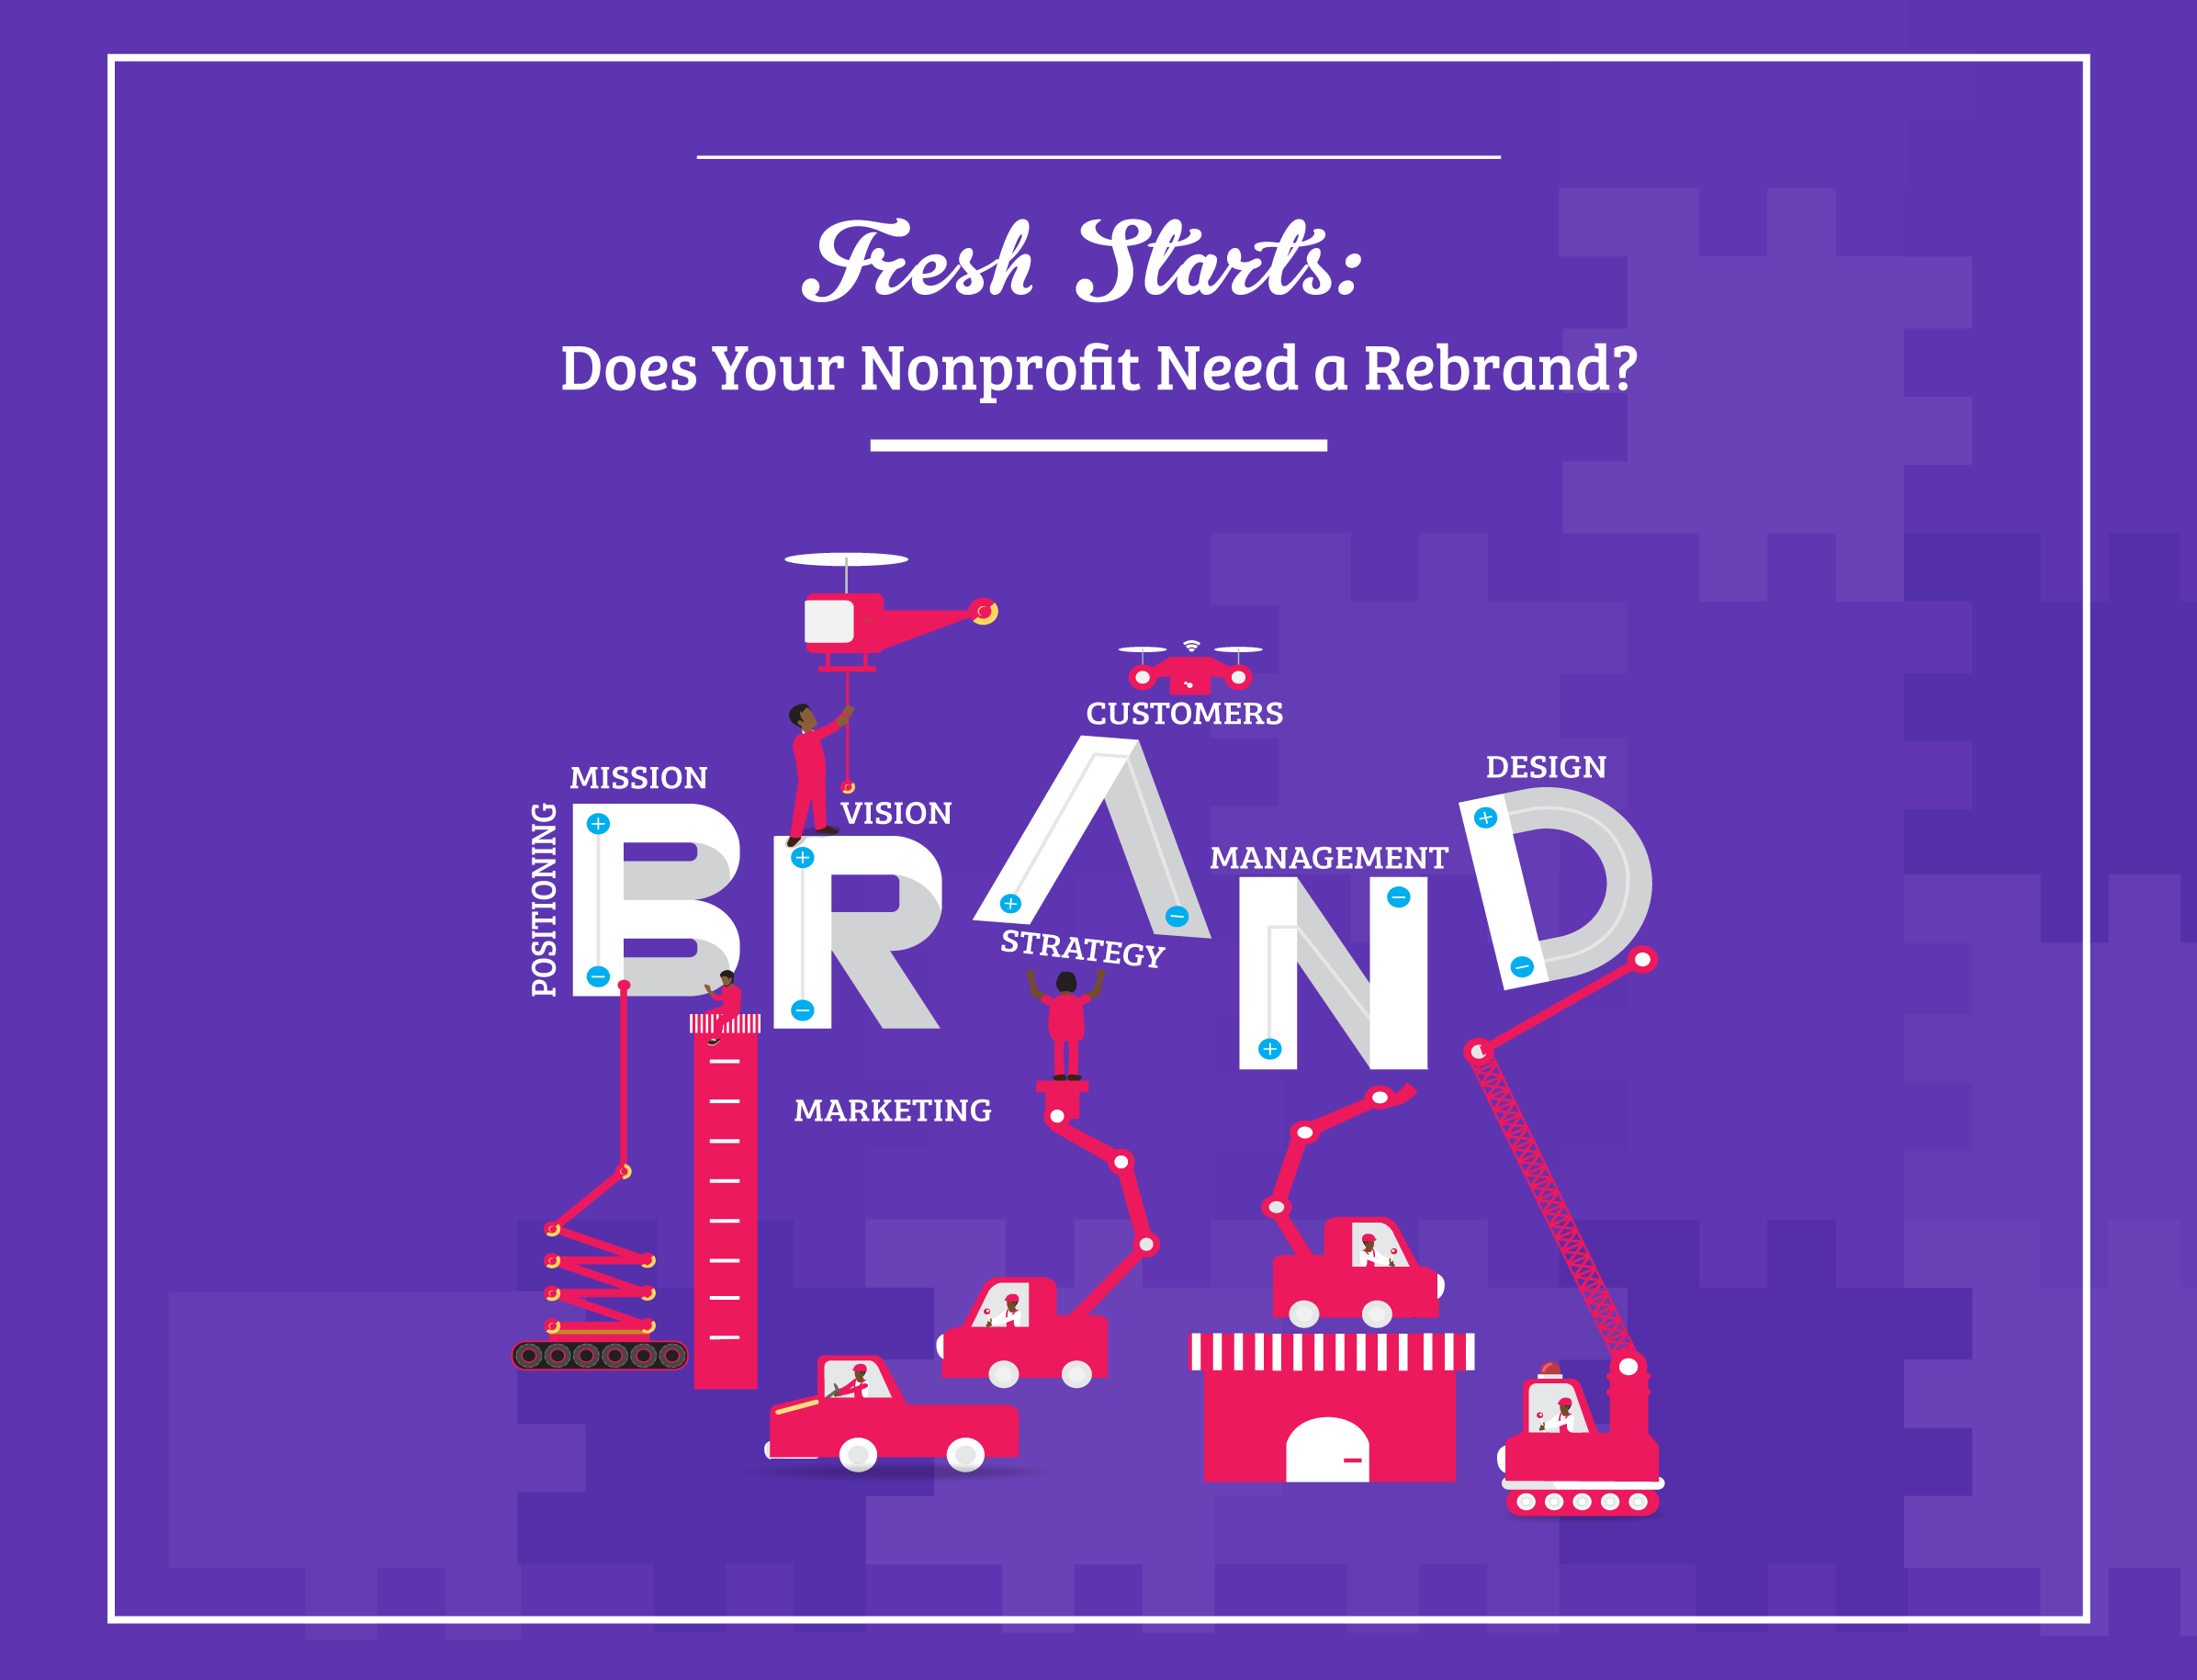 Fresh Starts: Does Your Nonprofit Need a Rebrand?